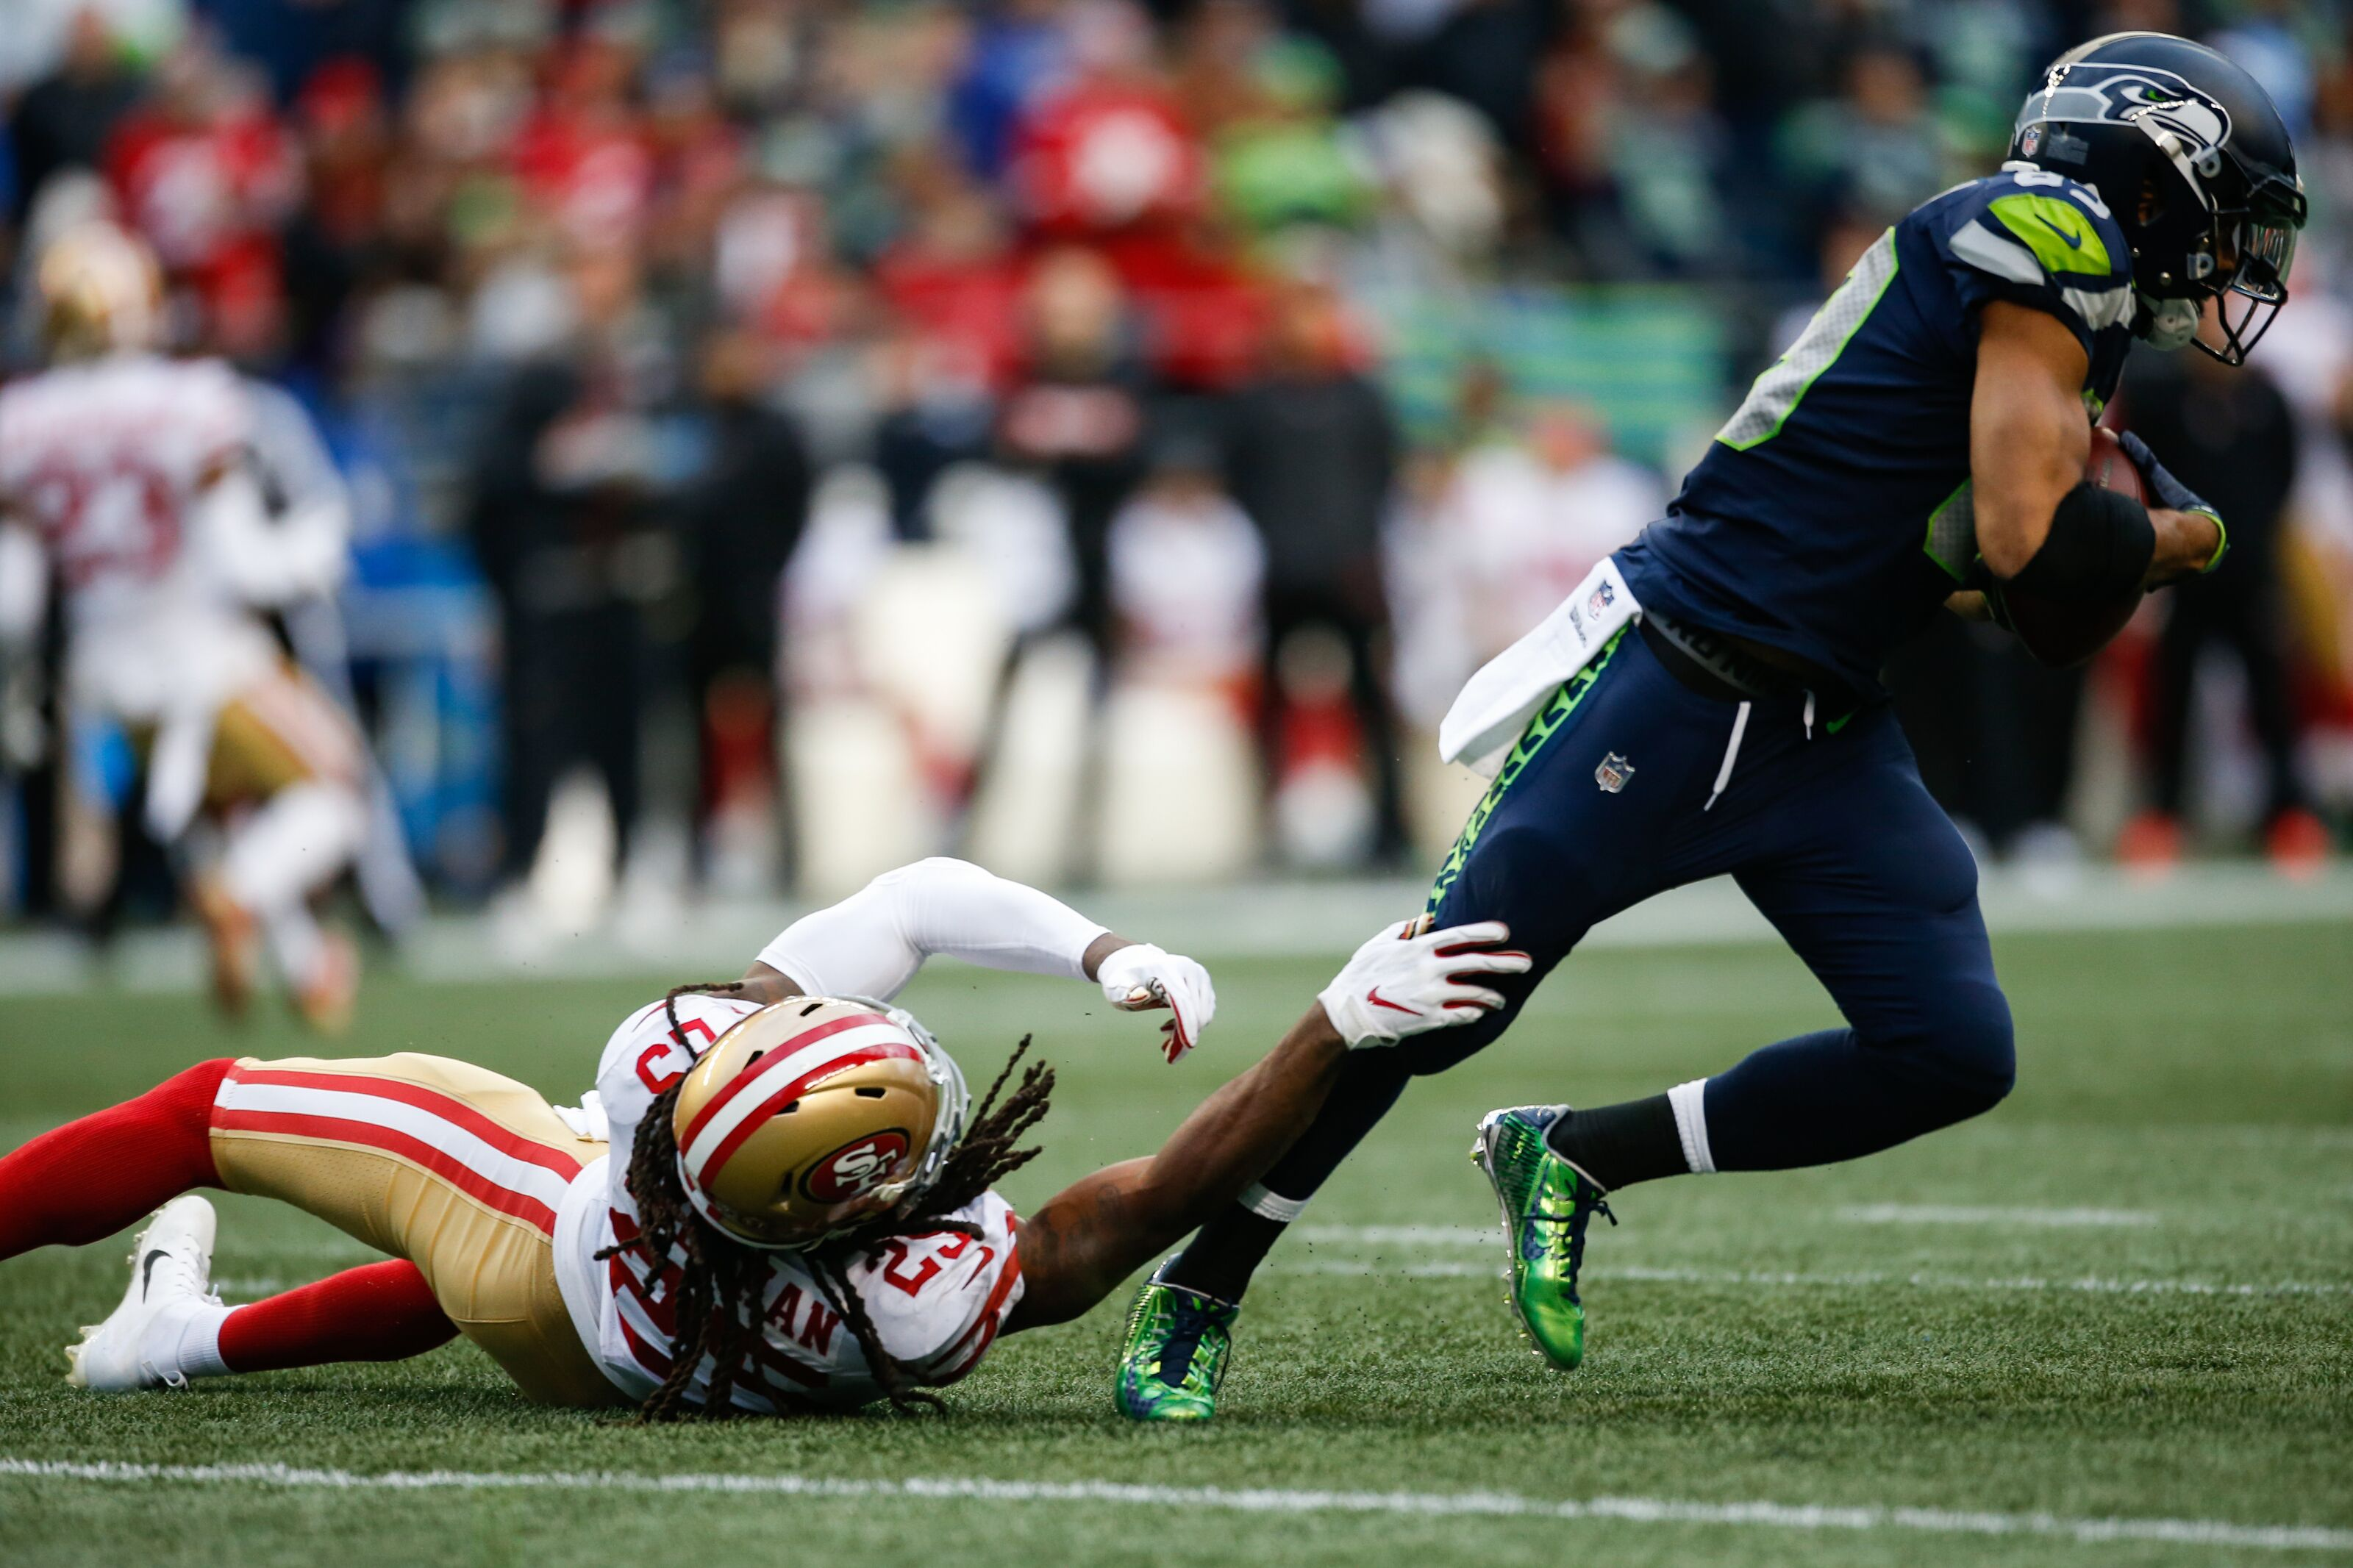 49ers vs. Seahawks: Dissecting the reasons behind San Francisco's loss